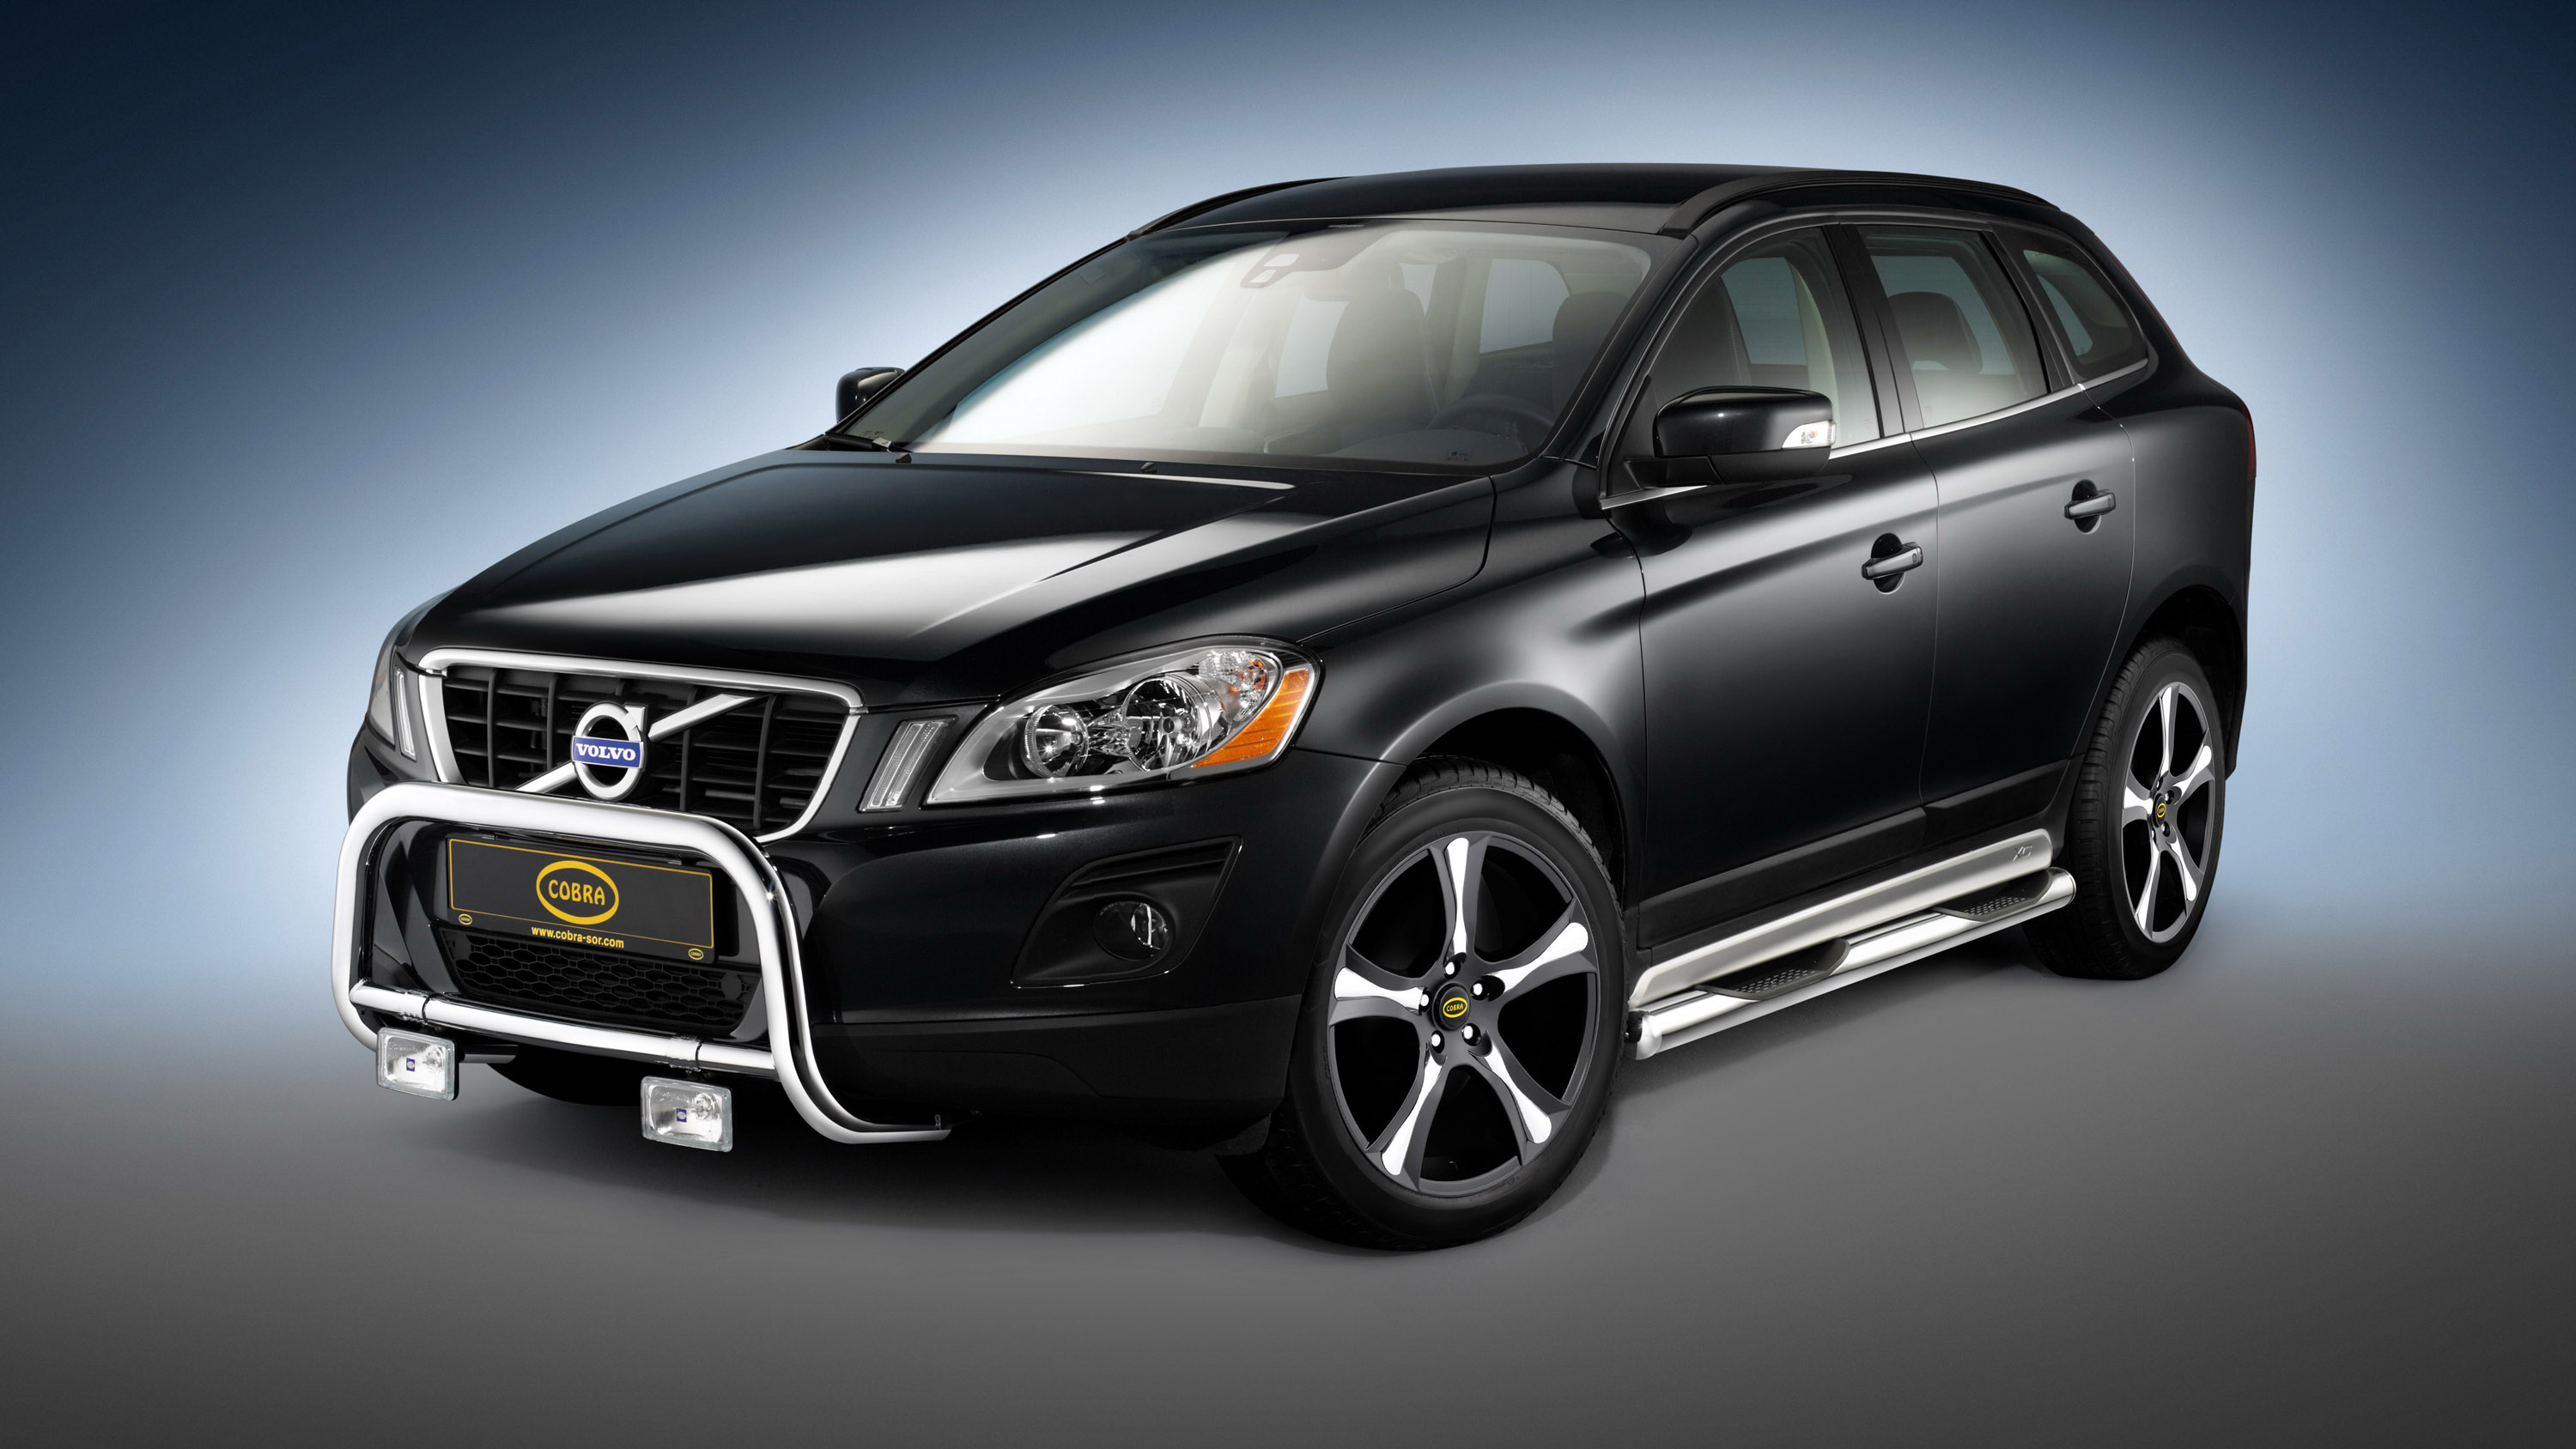 Volvo Xc With Energy Absorbing Cobra Technology Lifestyle Front Guard Sill Tubes And Cobra Torino Inox Wheels